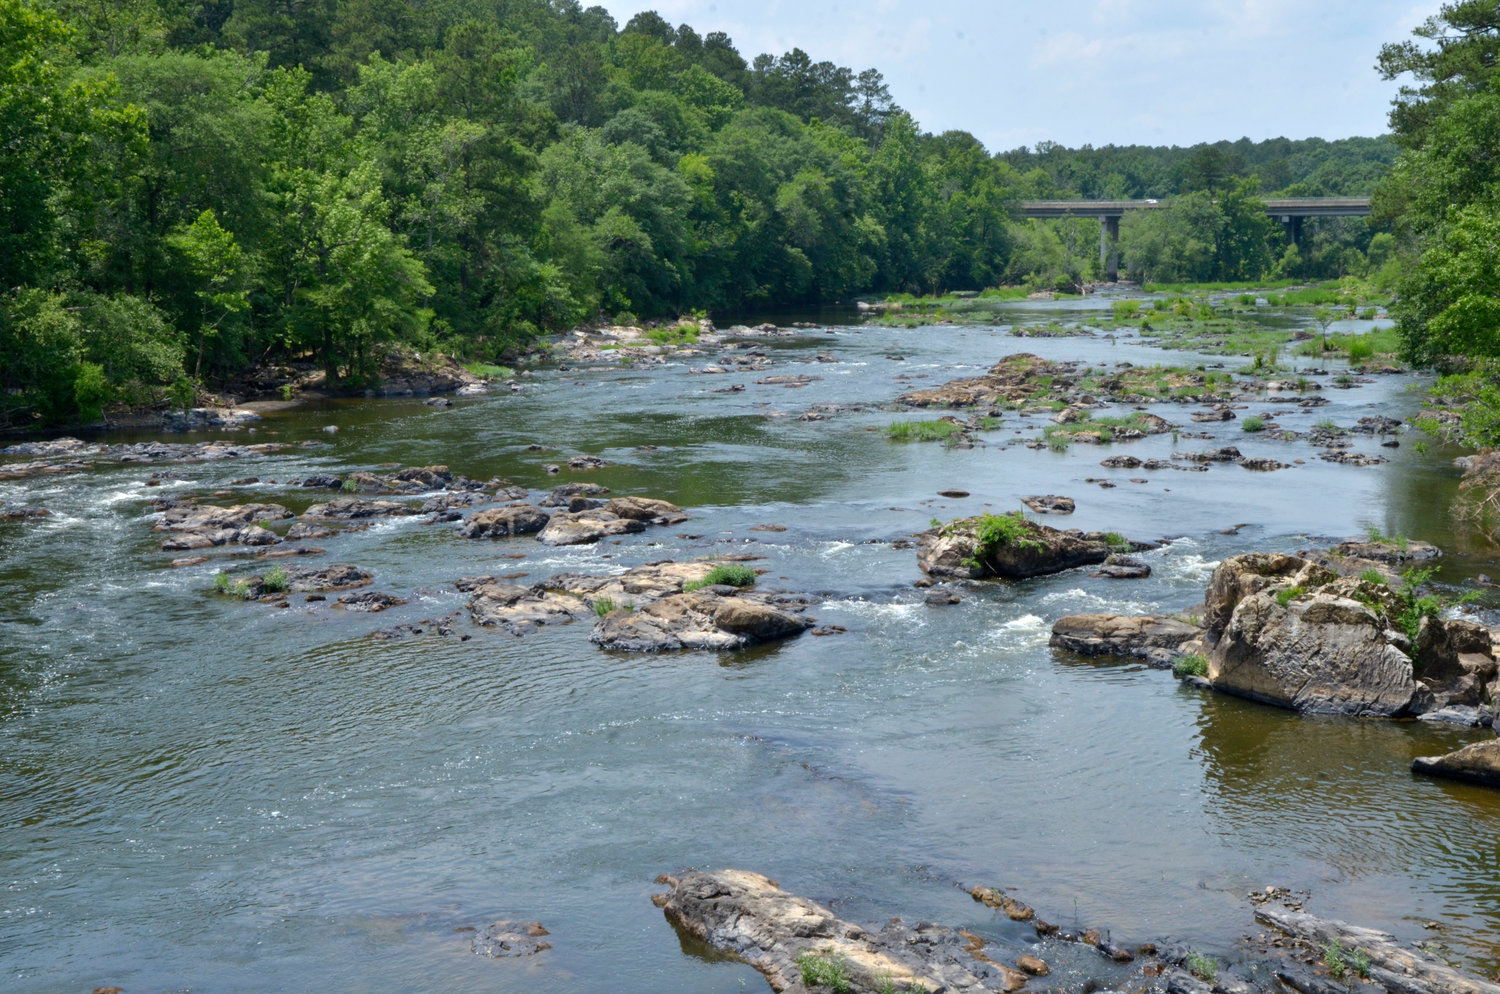 The Haw River, which flows through Pittsboro and supplies the town with its drinking water, is 'one of the most impacted' waterways in terms of unregulated chemicals in the Cape Fear Basin, according to according to Detlef Knappe, S. James Ellen Distinguished Professor of Civil, Construction and Environmental Engineering at N.C. State.